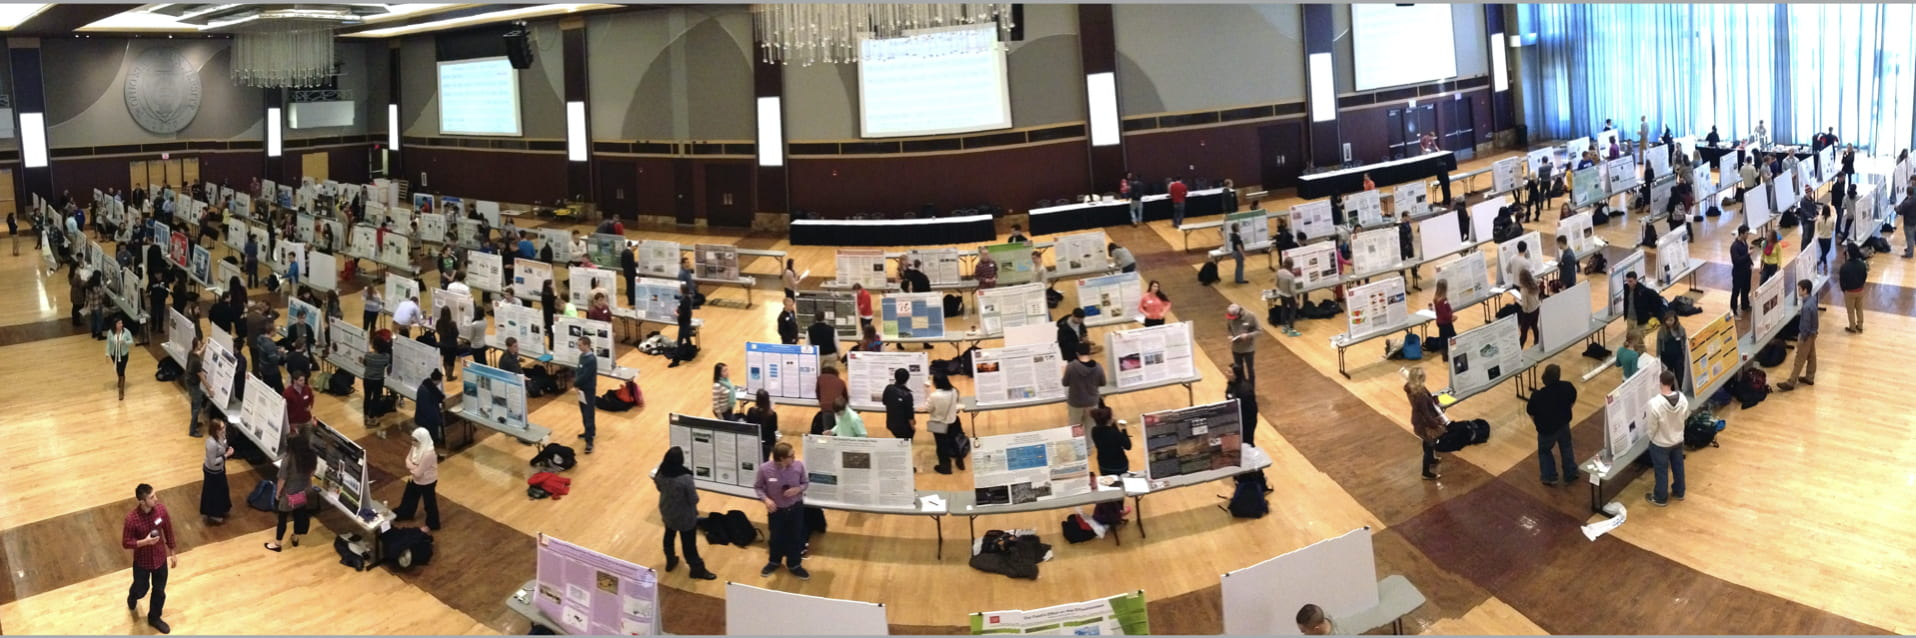 student poster symposium with students presenting posters in Ohio Union